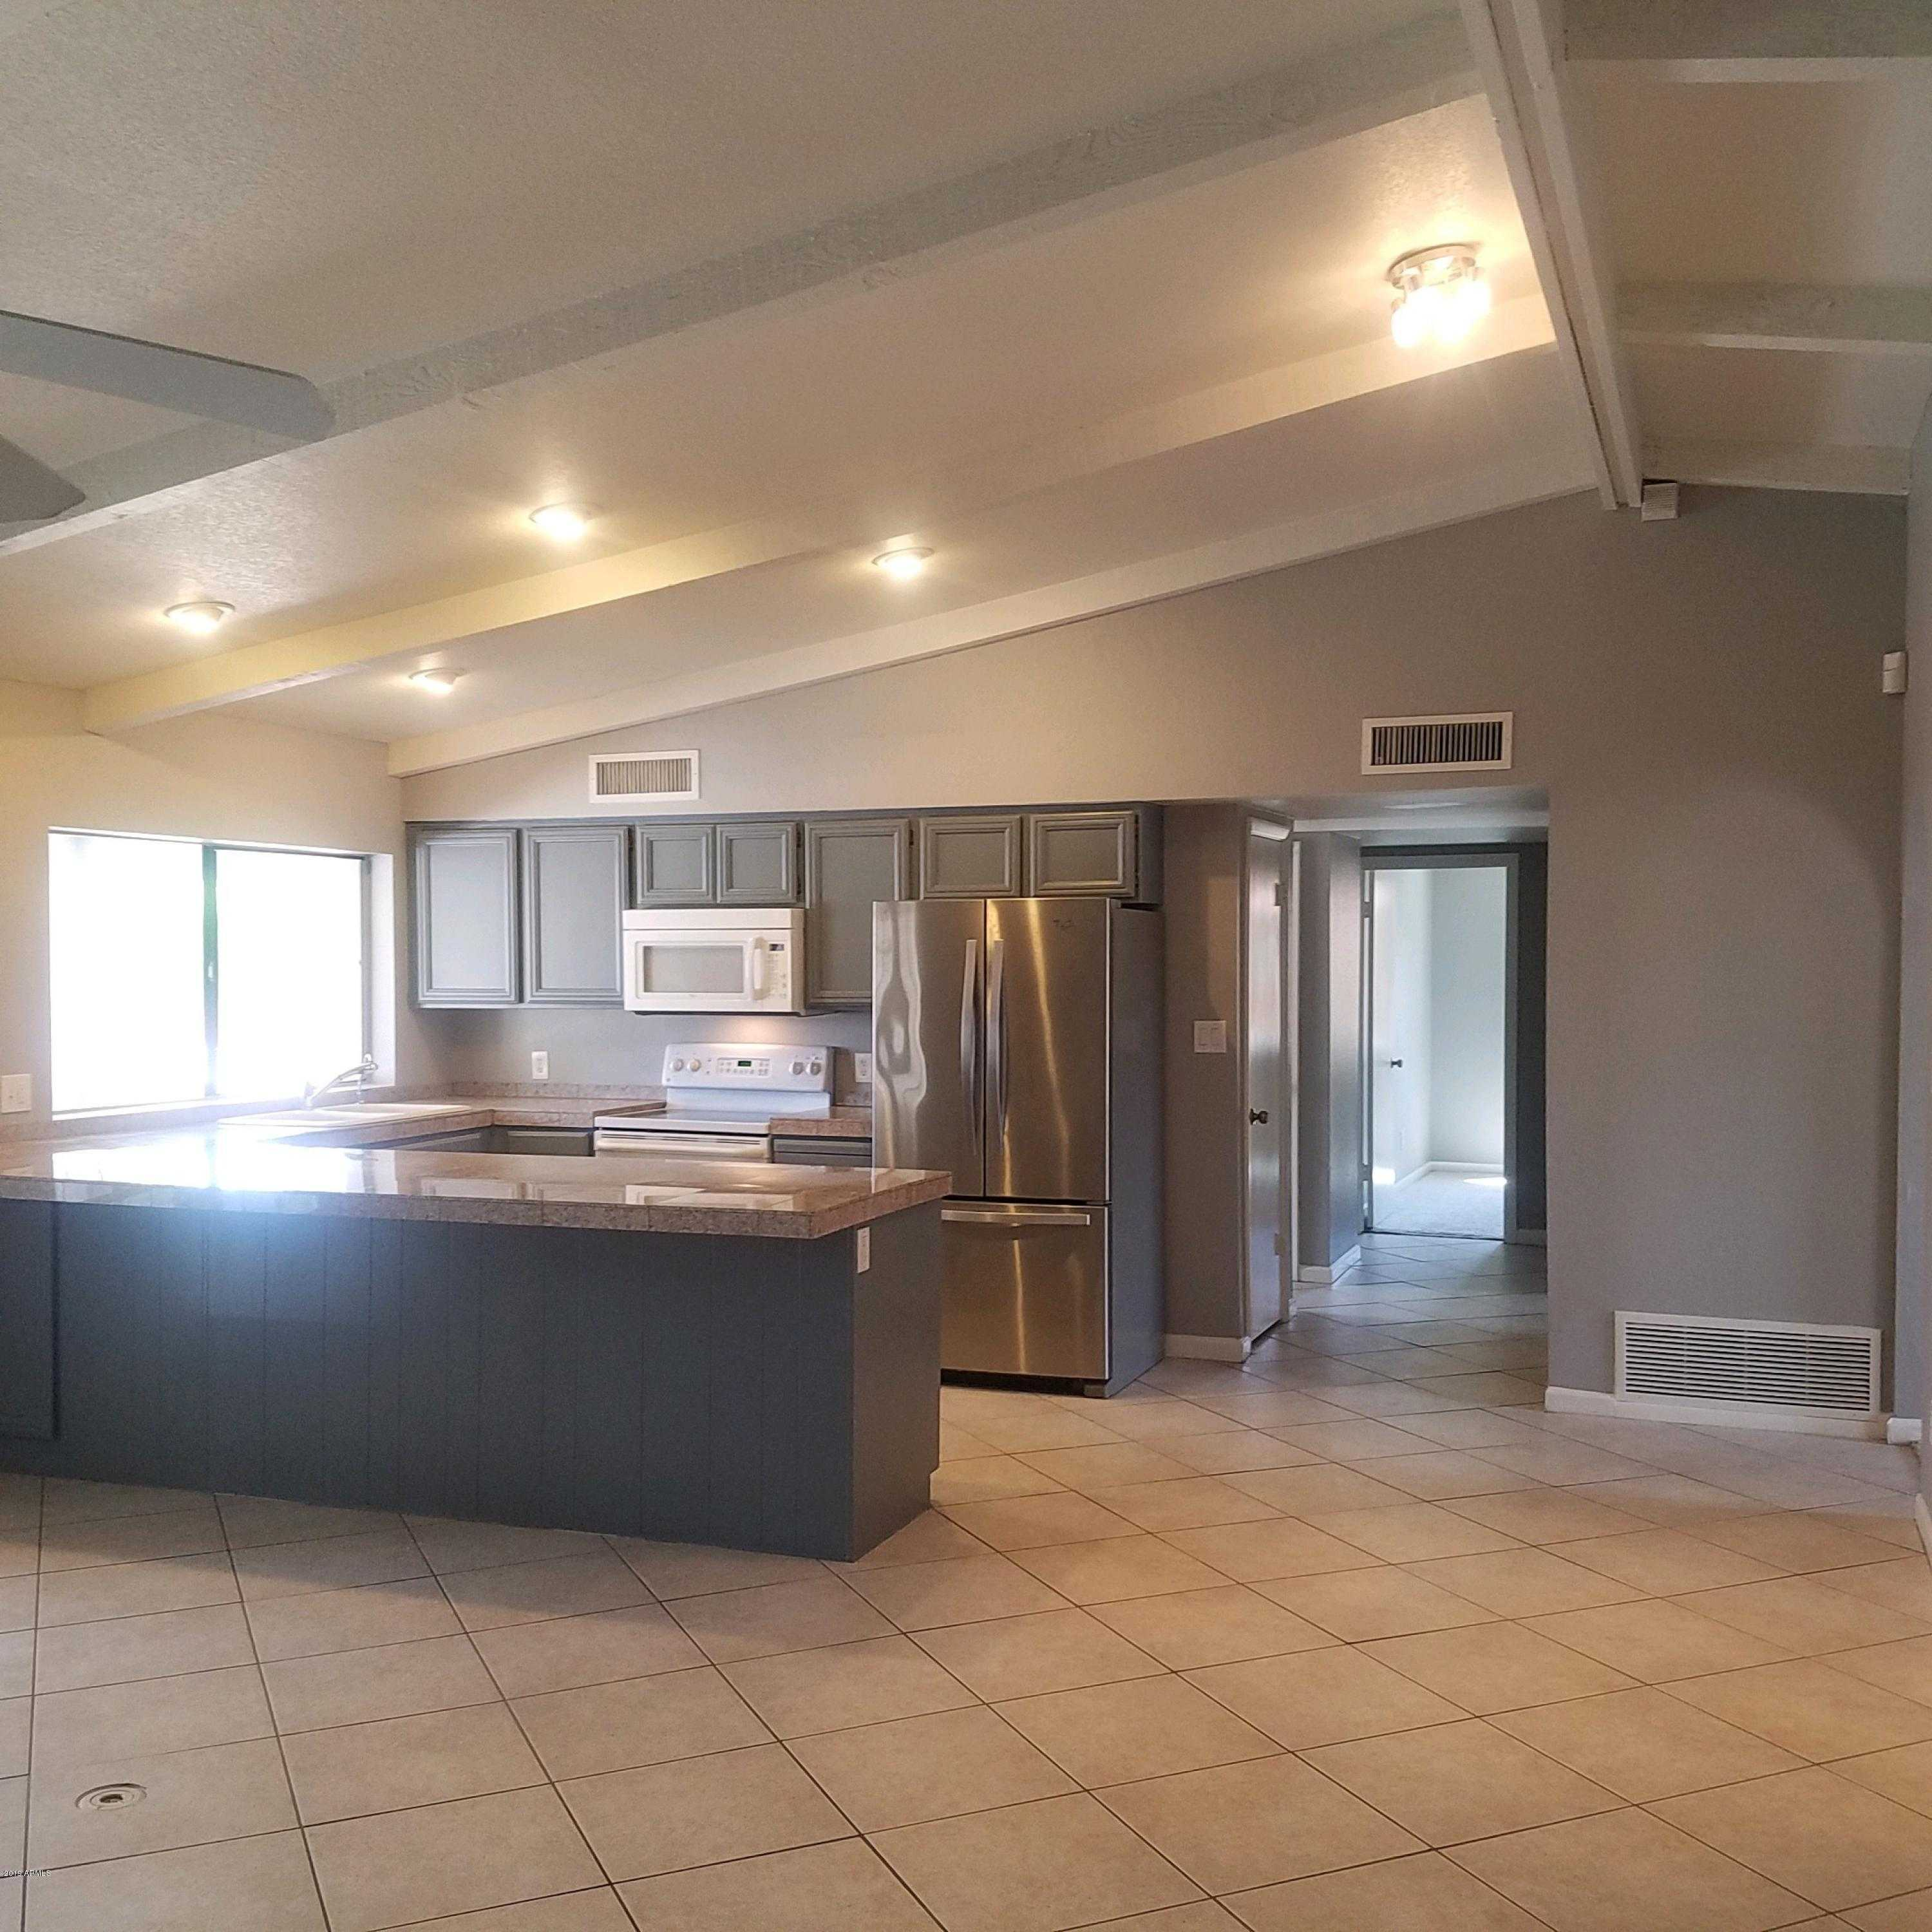 $400,000 - 3Br/2Ba - Home for Sale in Shadow Mountain Estates Unit 3 Lots 48-79, Phoenix